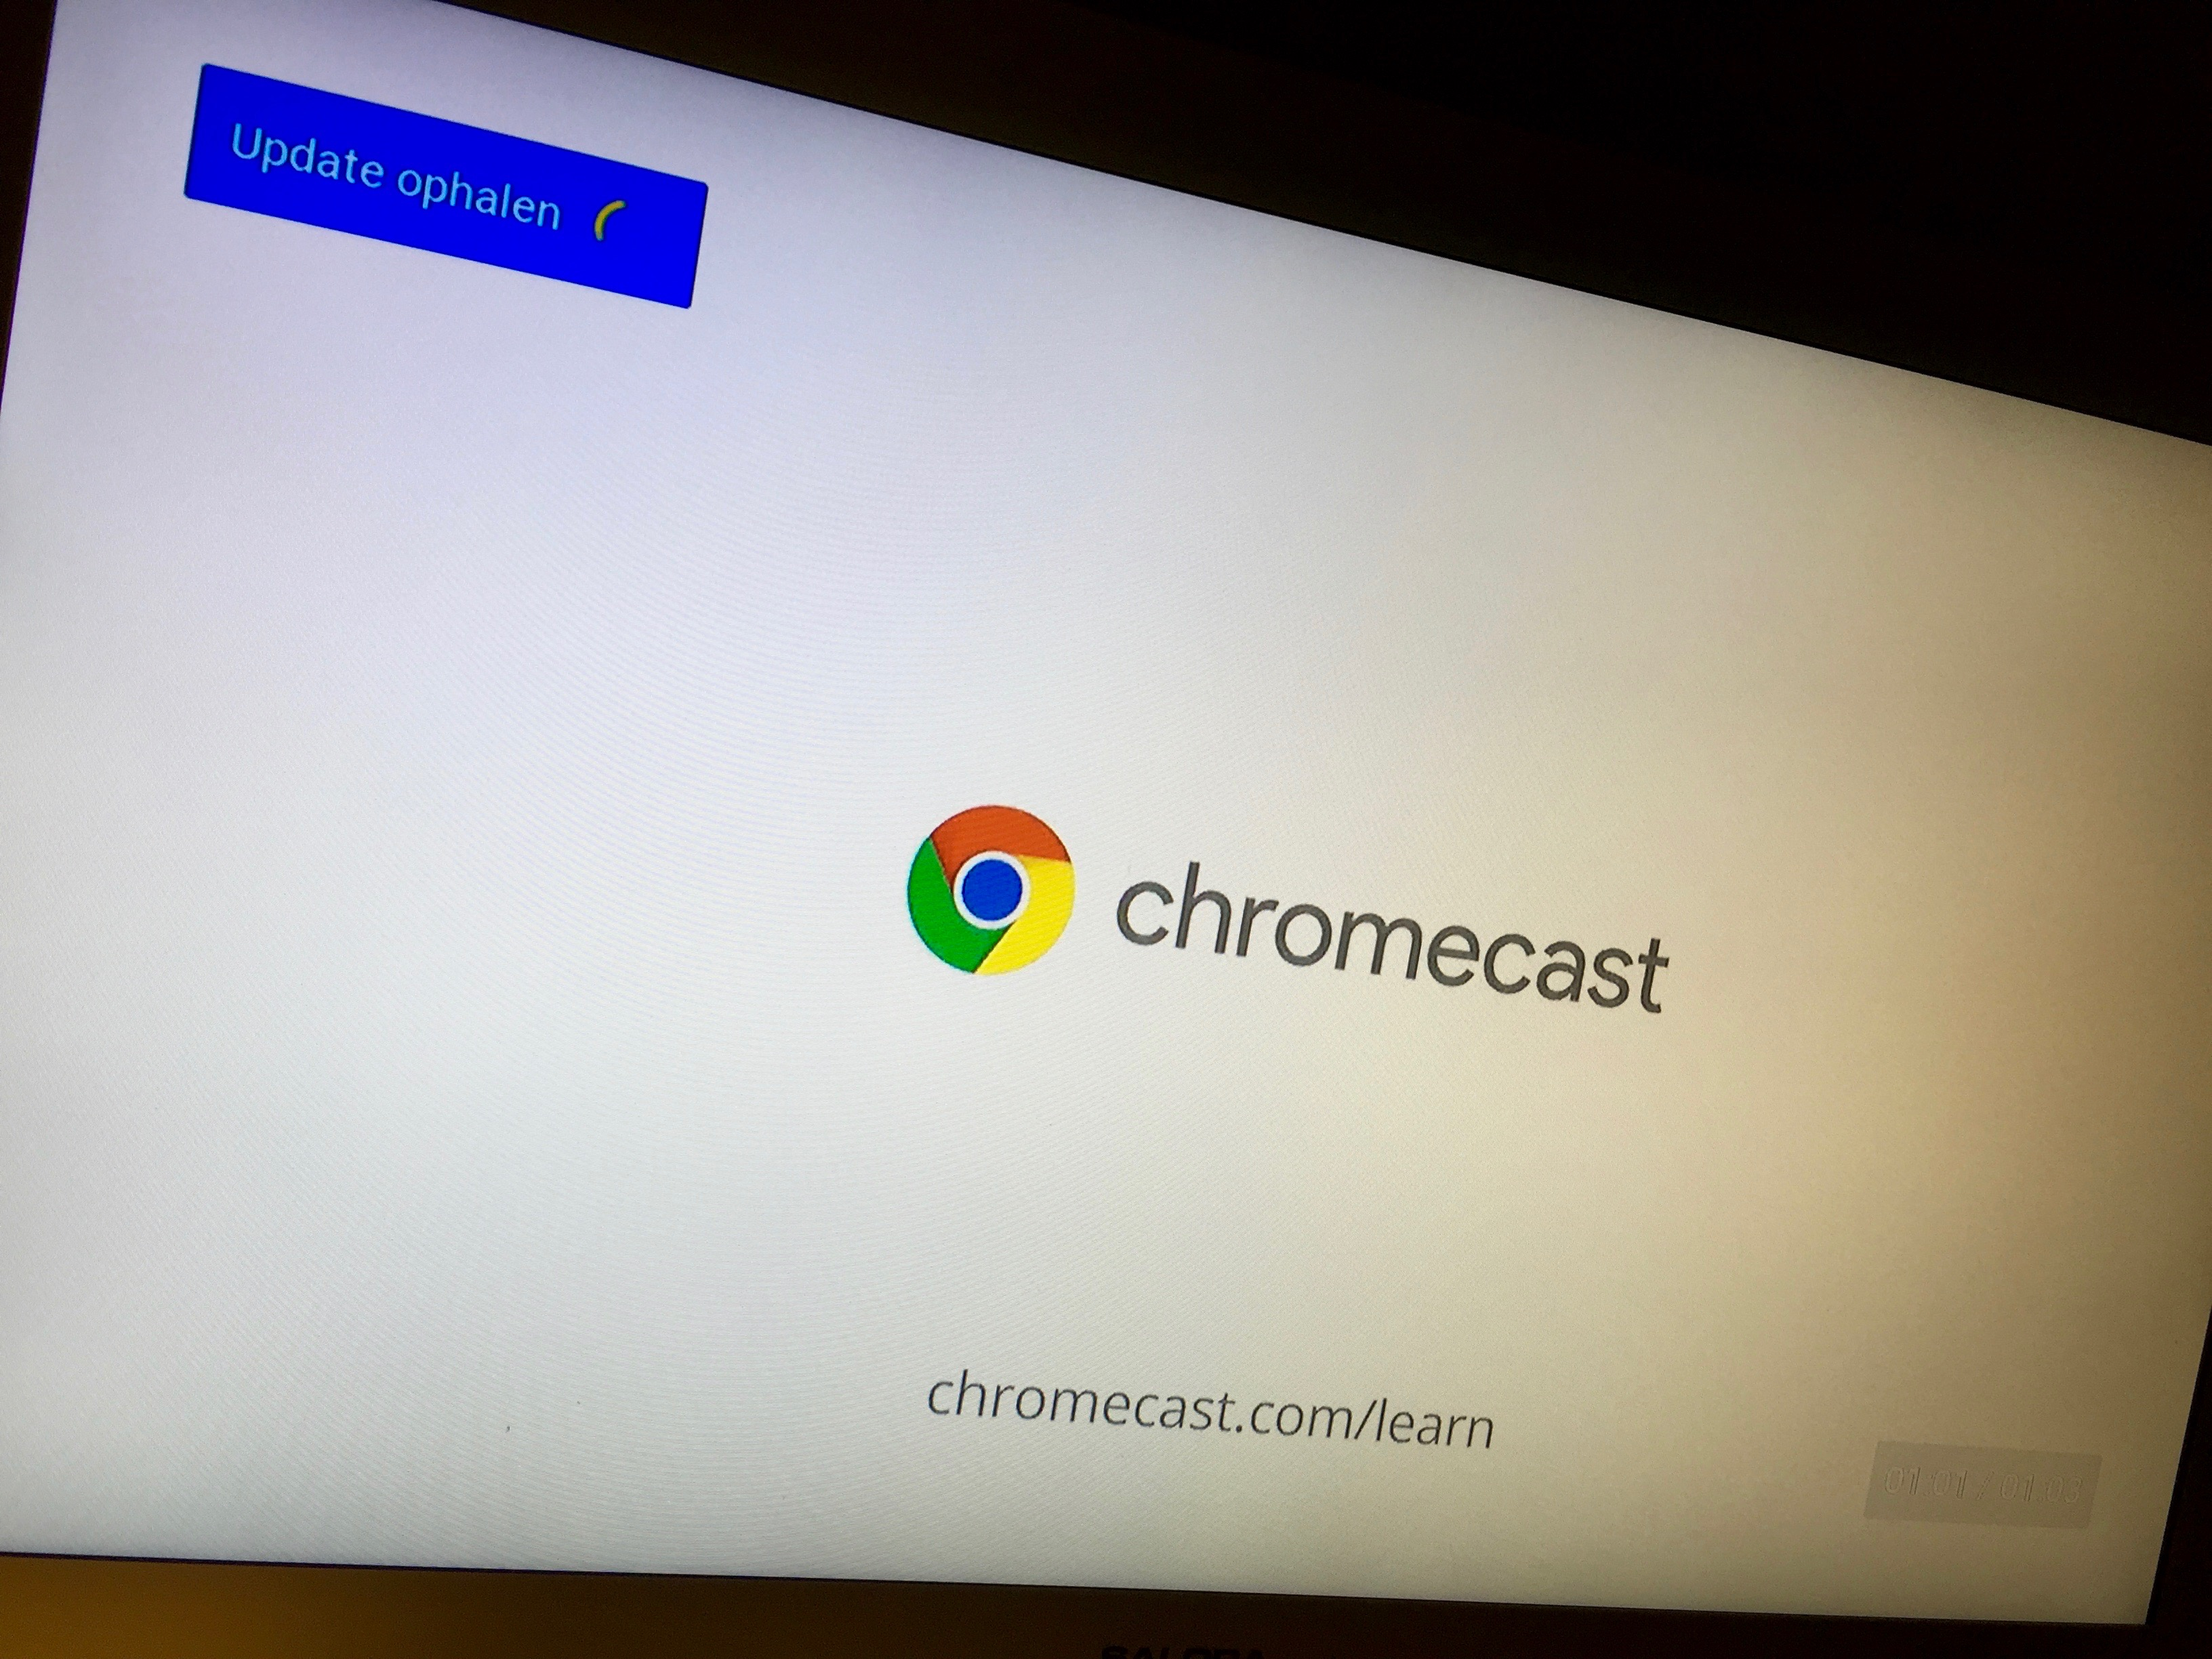 Chromecast update